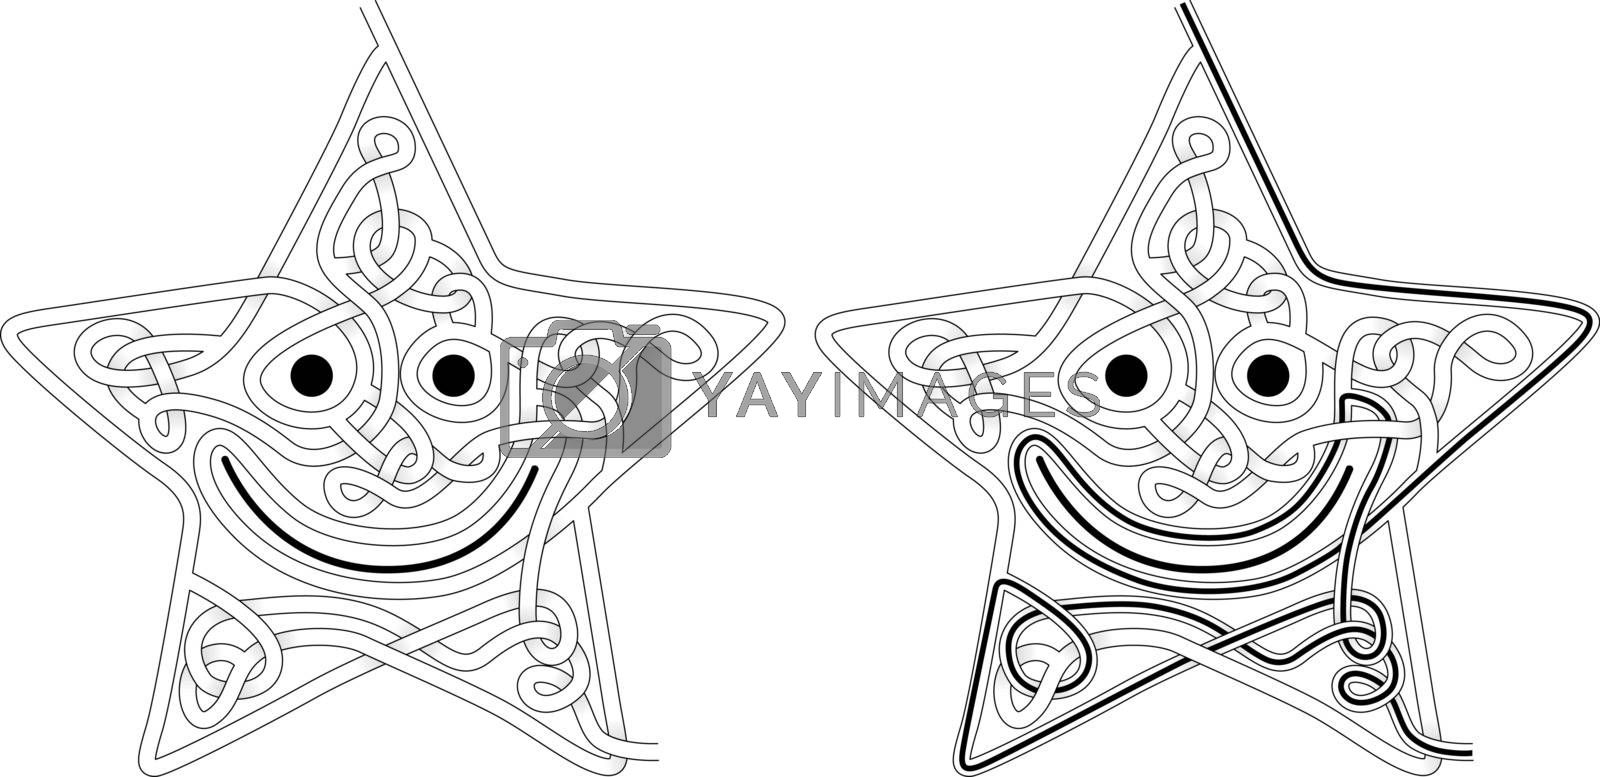 Star maze for kids with a solution in black and white